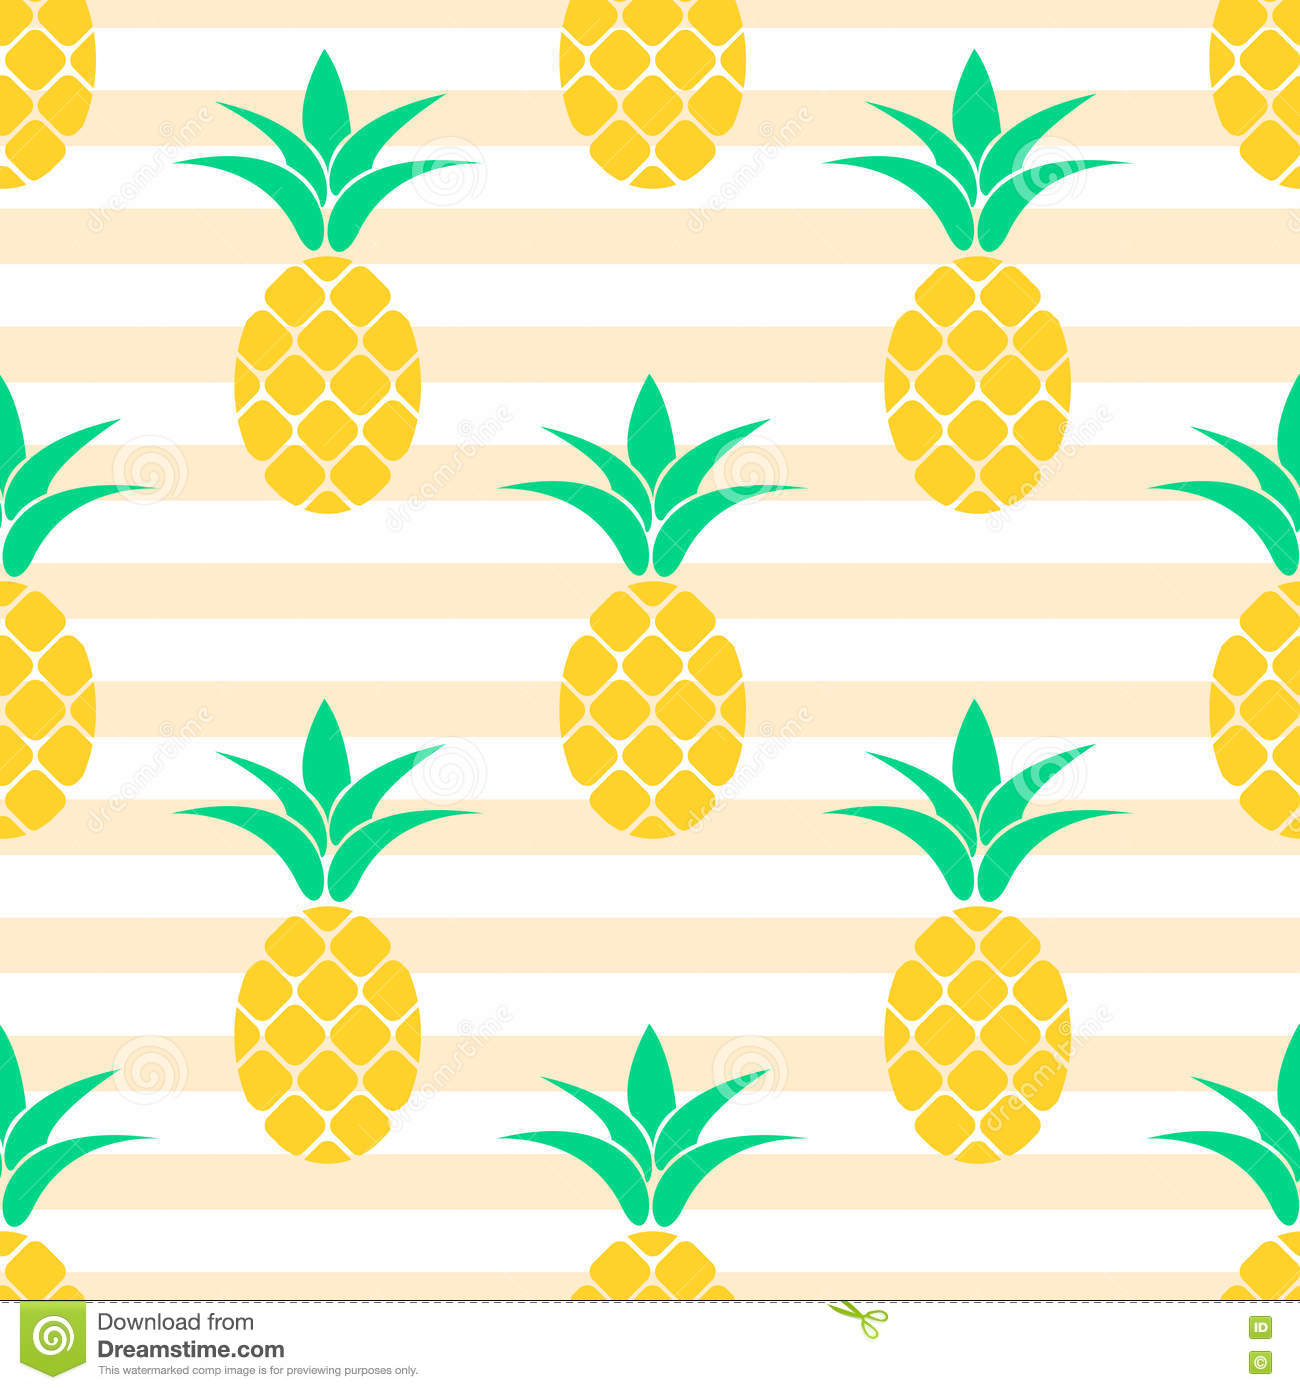 Pineapple pattern background - photo#21